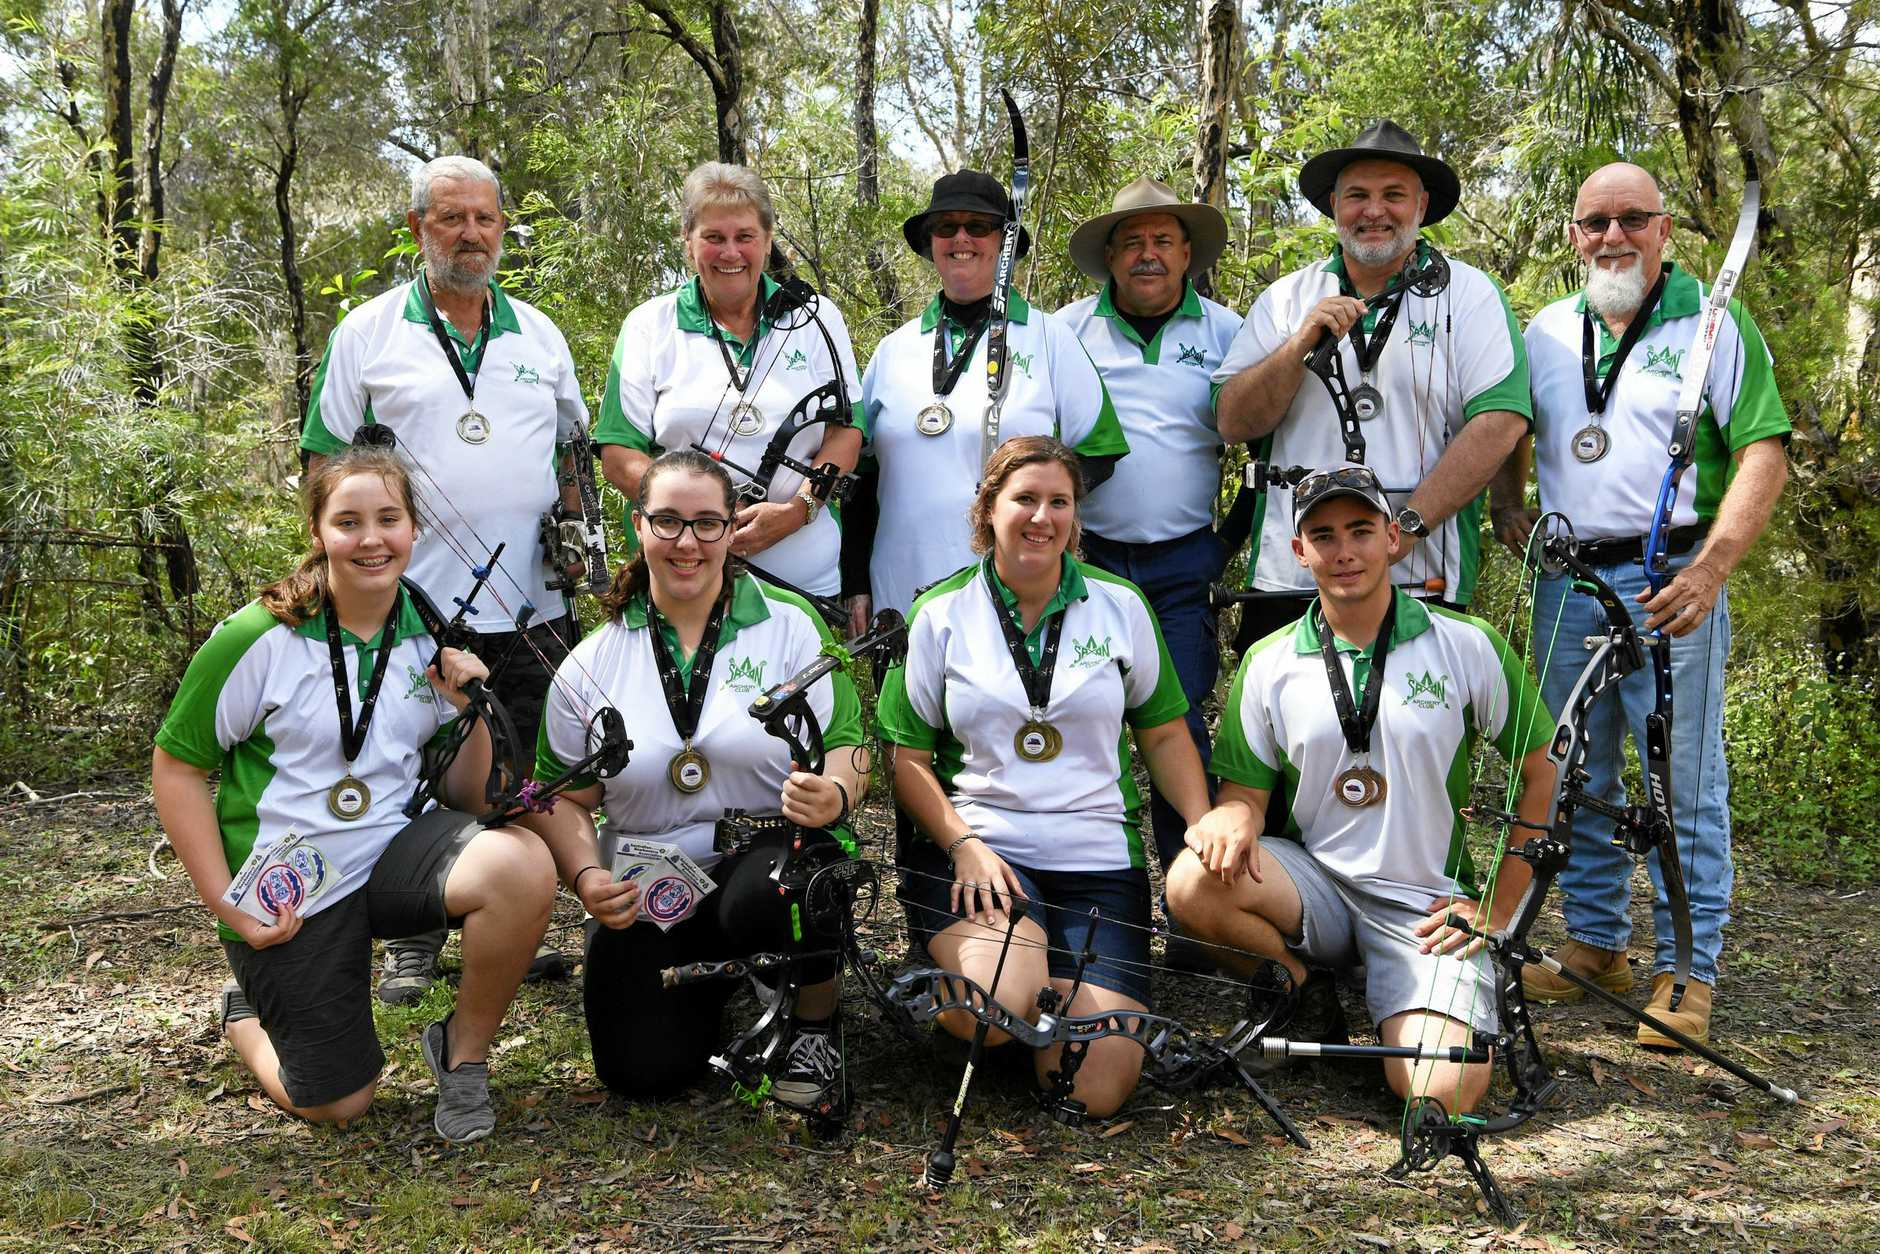 MEDAL WINNERS: Peter Helmrich (back), Pam Helmrich, Annette Christensen, Jum Gilbert, Andrew Little, Percy Gott, Marnie Little (front), Bella Little, Hannah Russell, Mitchell King. (two missing: Mouse Wondrock and Rebecca Darby)